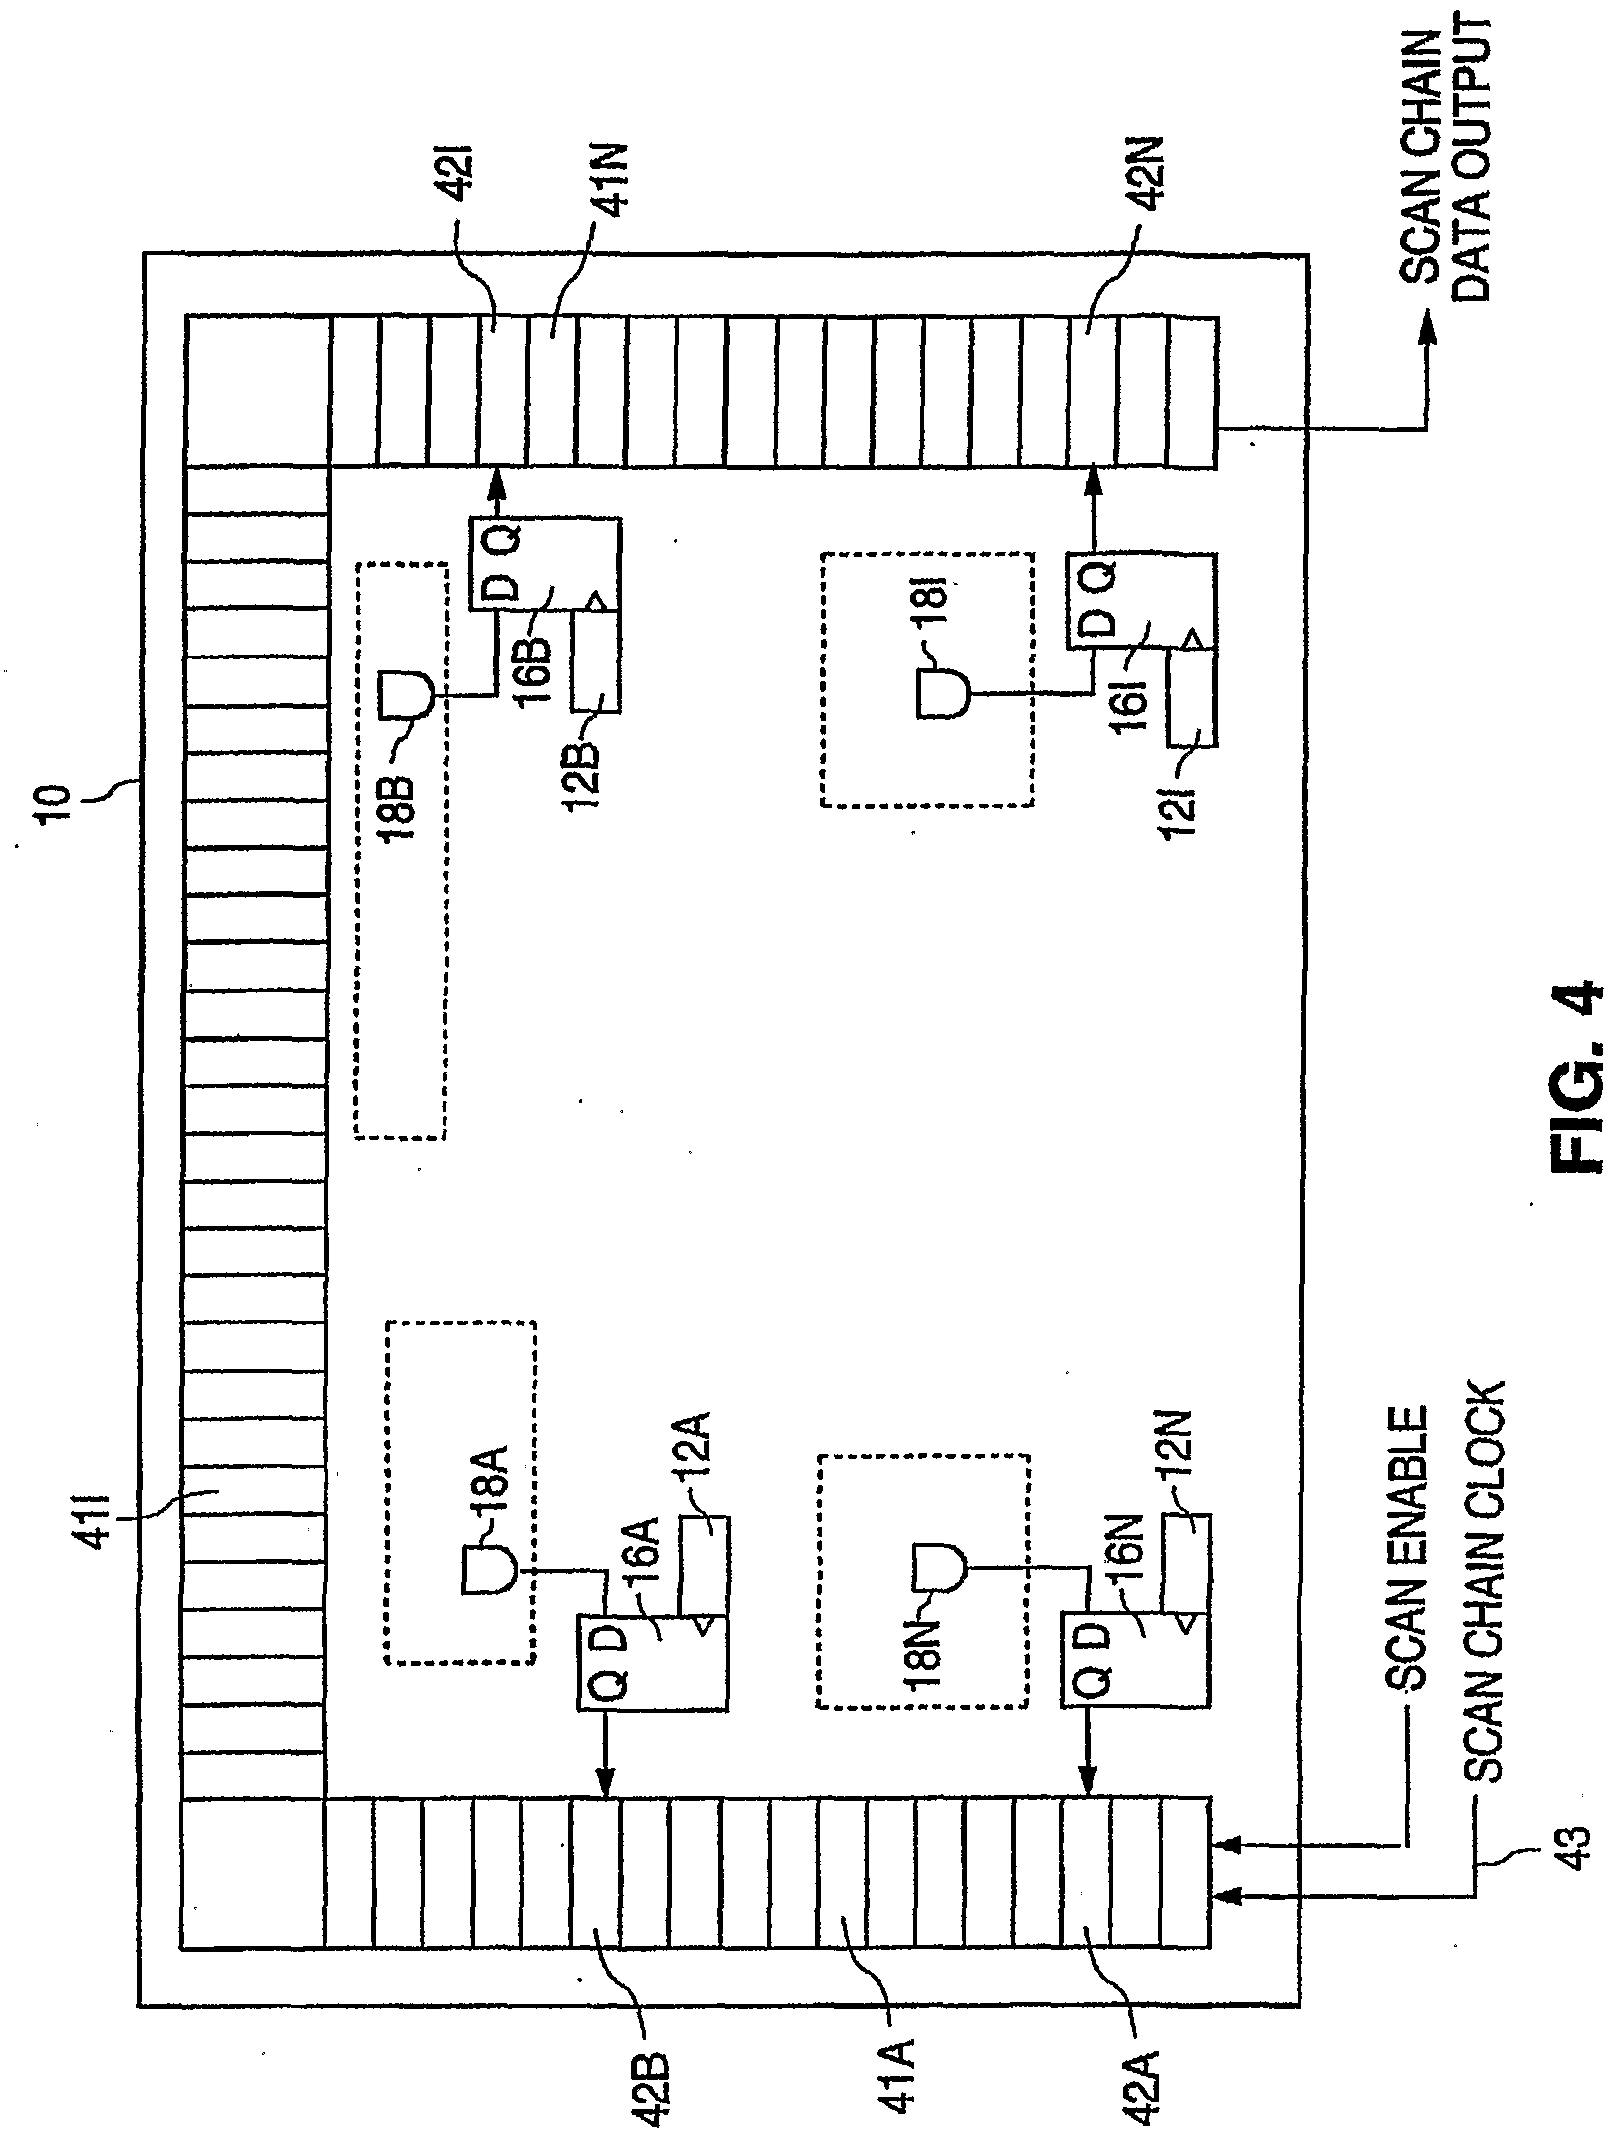 Wo2004113942a1 Method For Fault Localization In Circuits Google Likewise Digital Clock Circuit Diagram On Nixie Schematic Figure Imgf000075 0001